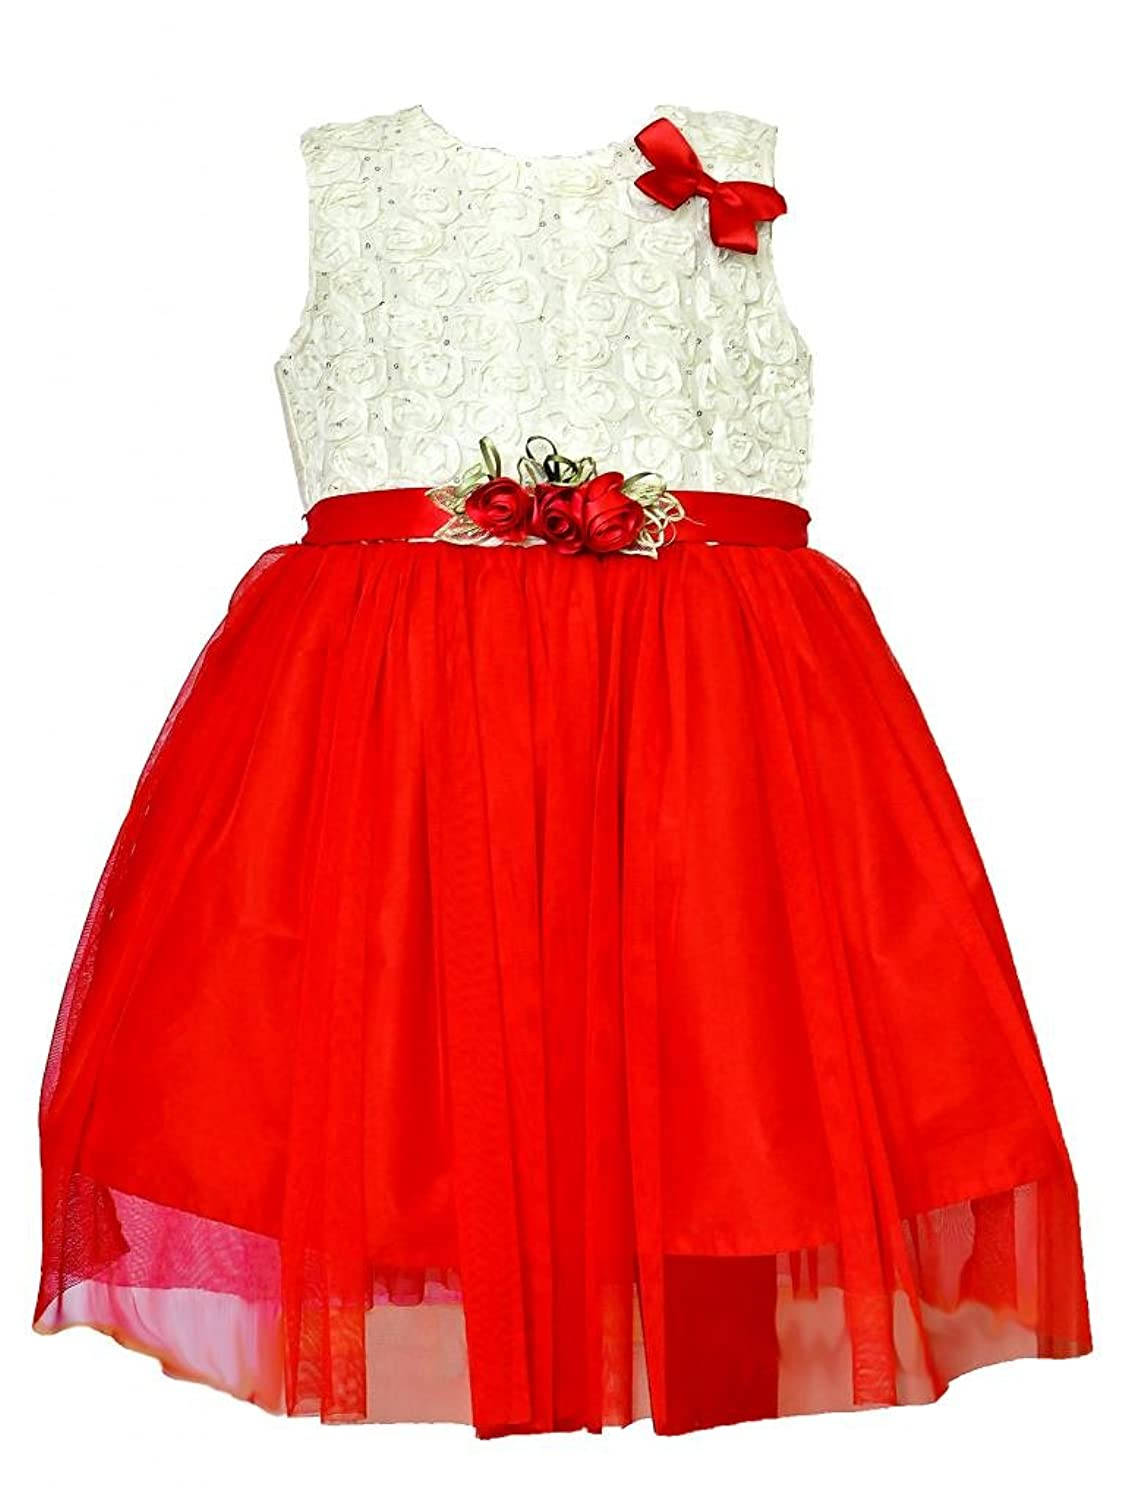 Posted in Birthday Dresses and tagged baby hair accessories online, little girl dresses online, party dresses for baby girl on March 1, by Baby Couture India. White is the color of purity and in this world nobody is as pure as little kids.